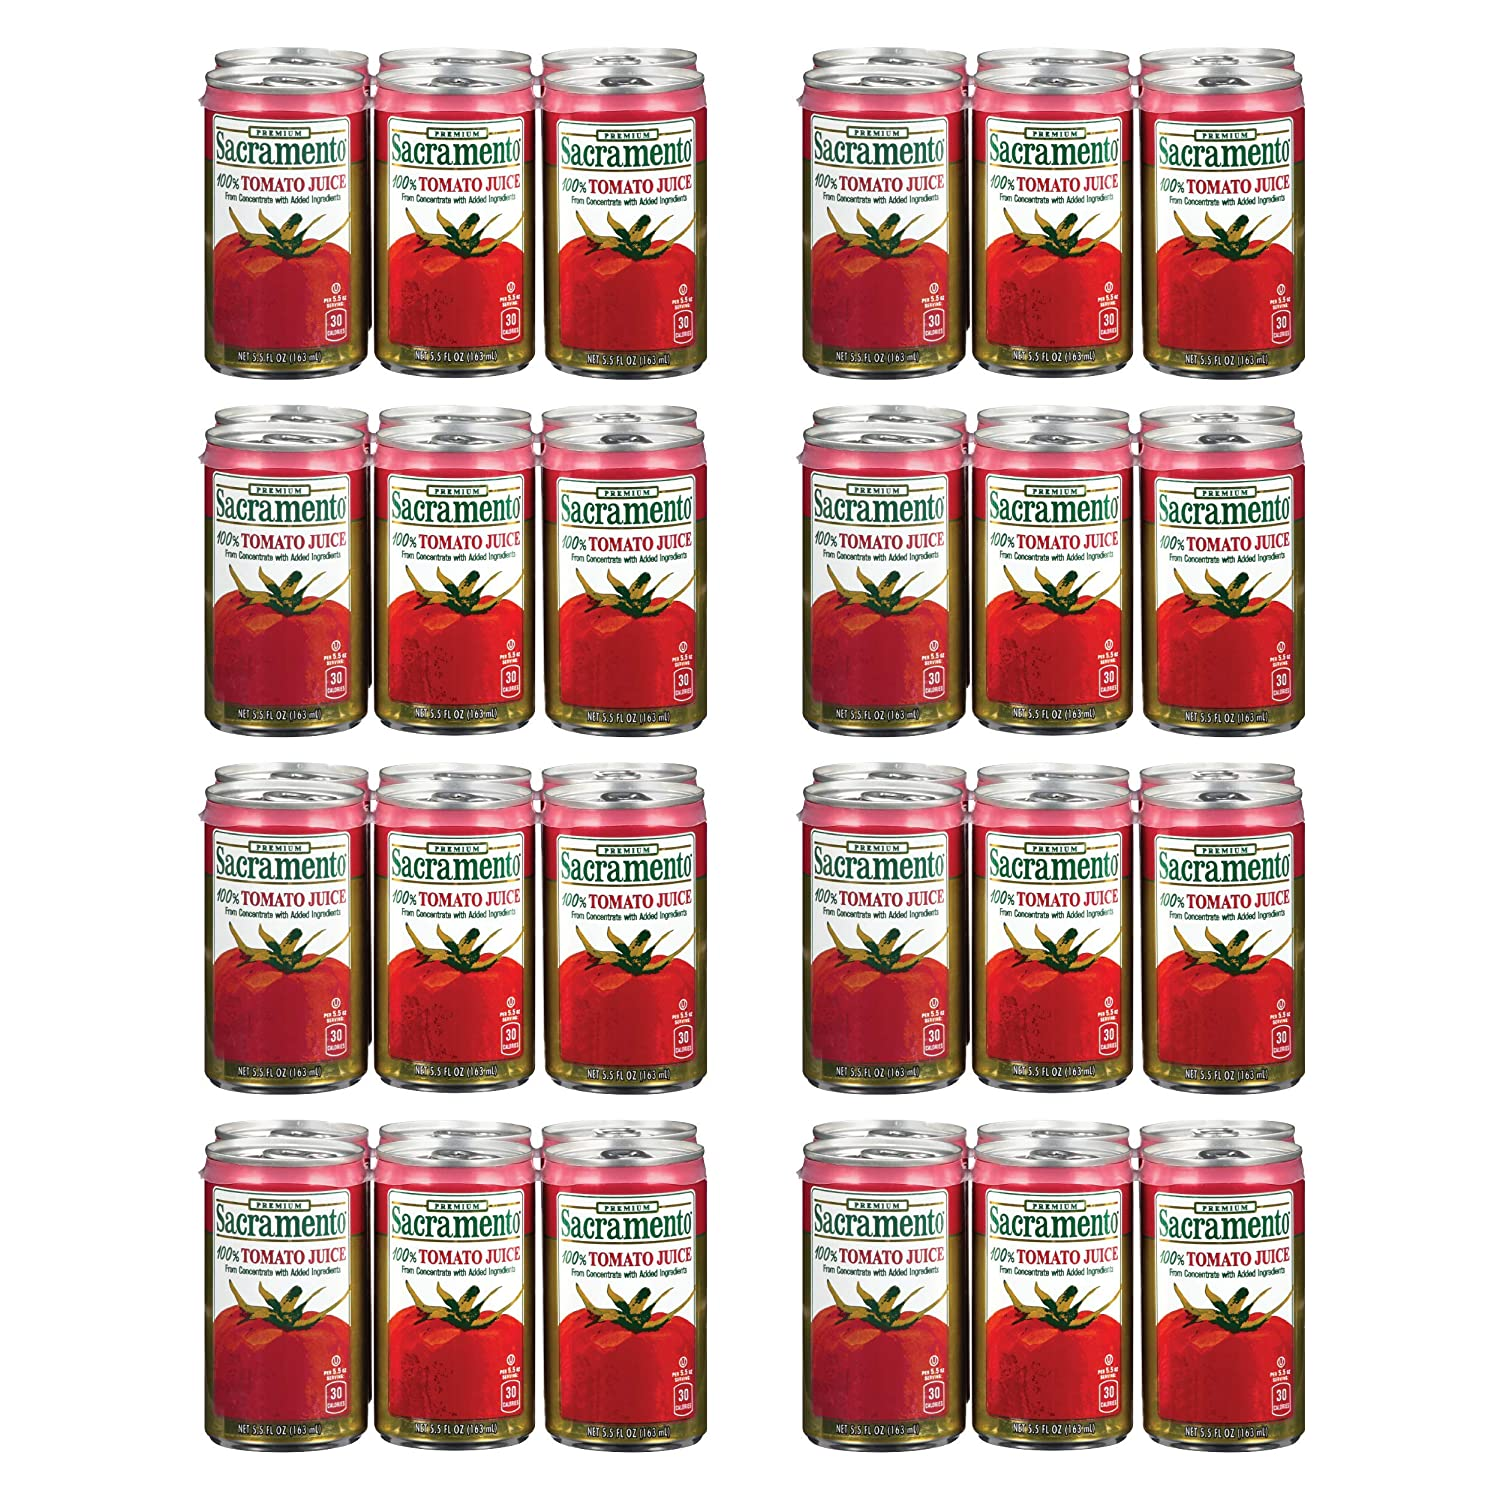 Sacramento Tomato Juice, No Added Sugar, No High Fructose Corn Syrup, 5.5 Ounce Cans, 48-Pack